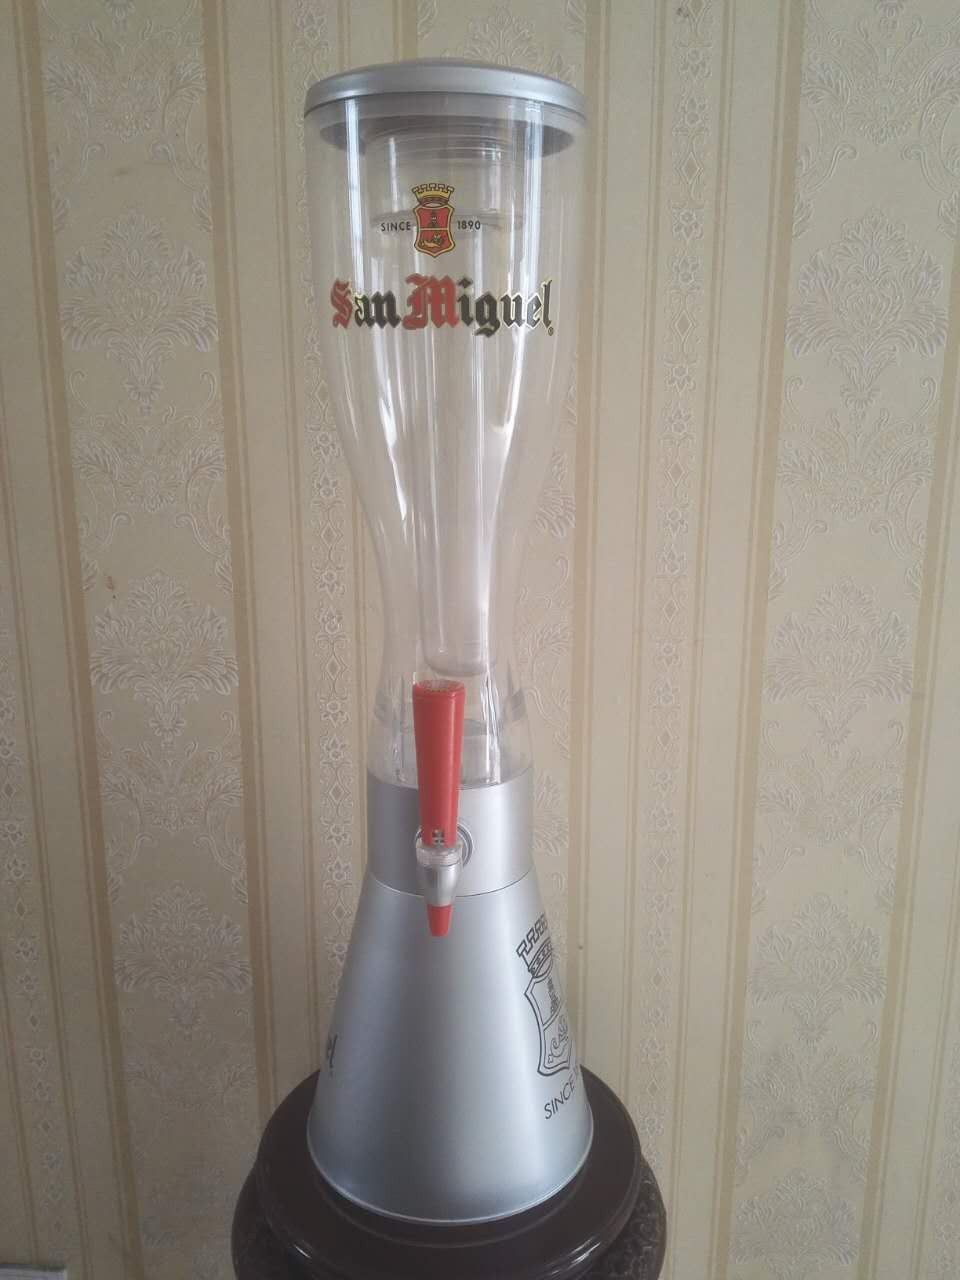 3L beer tower in special shape